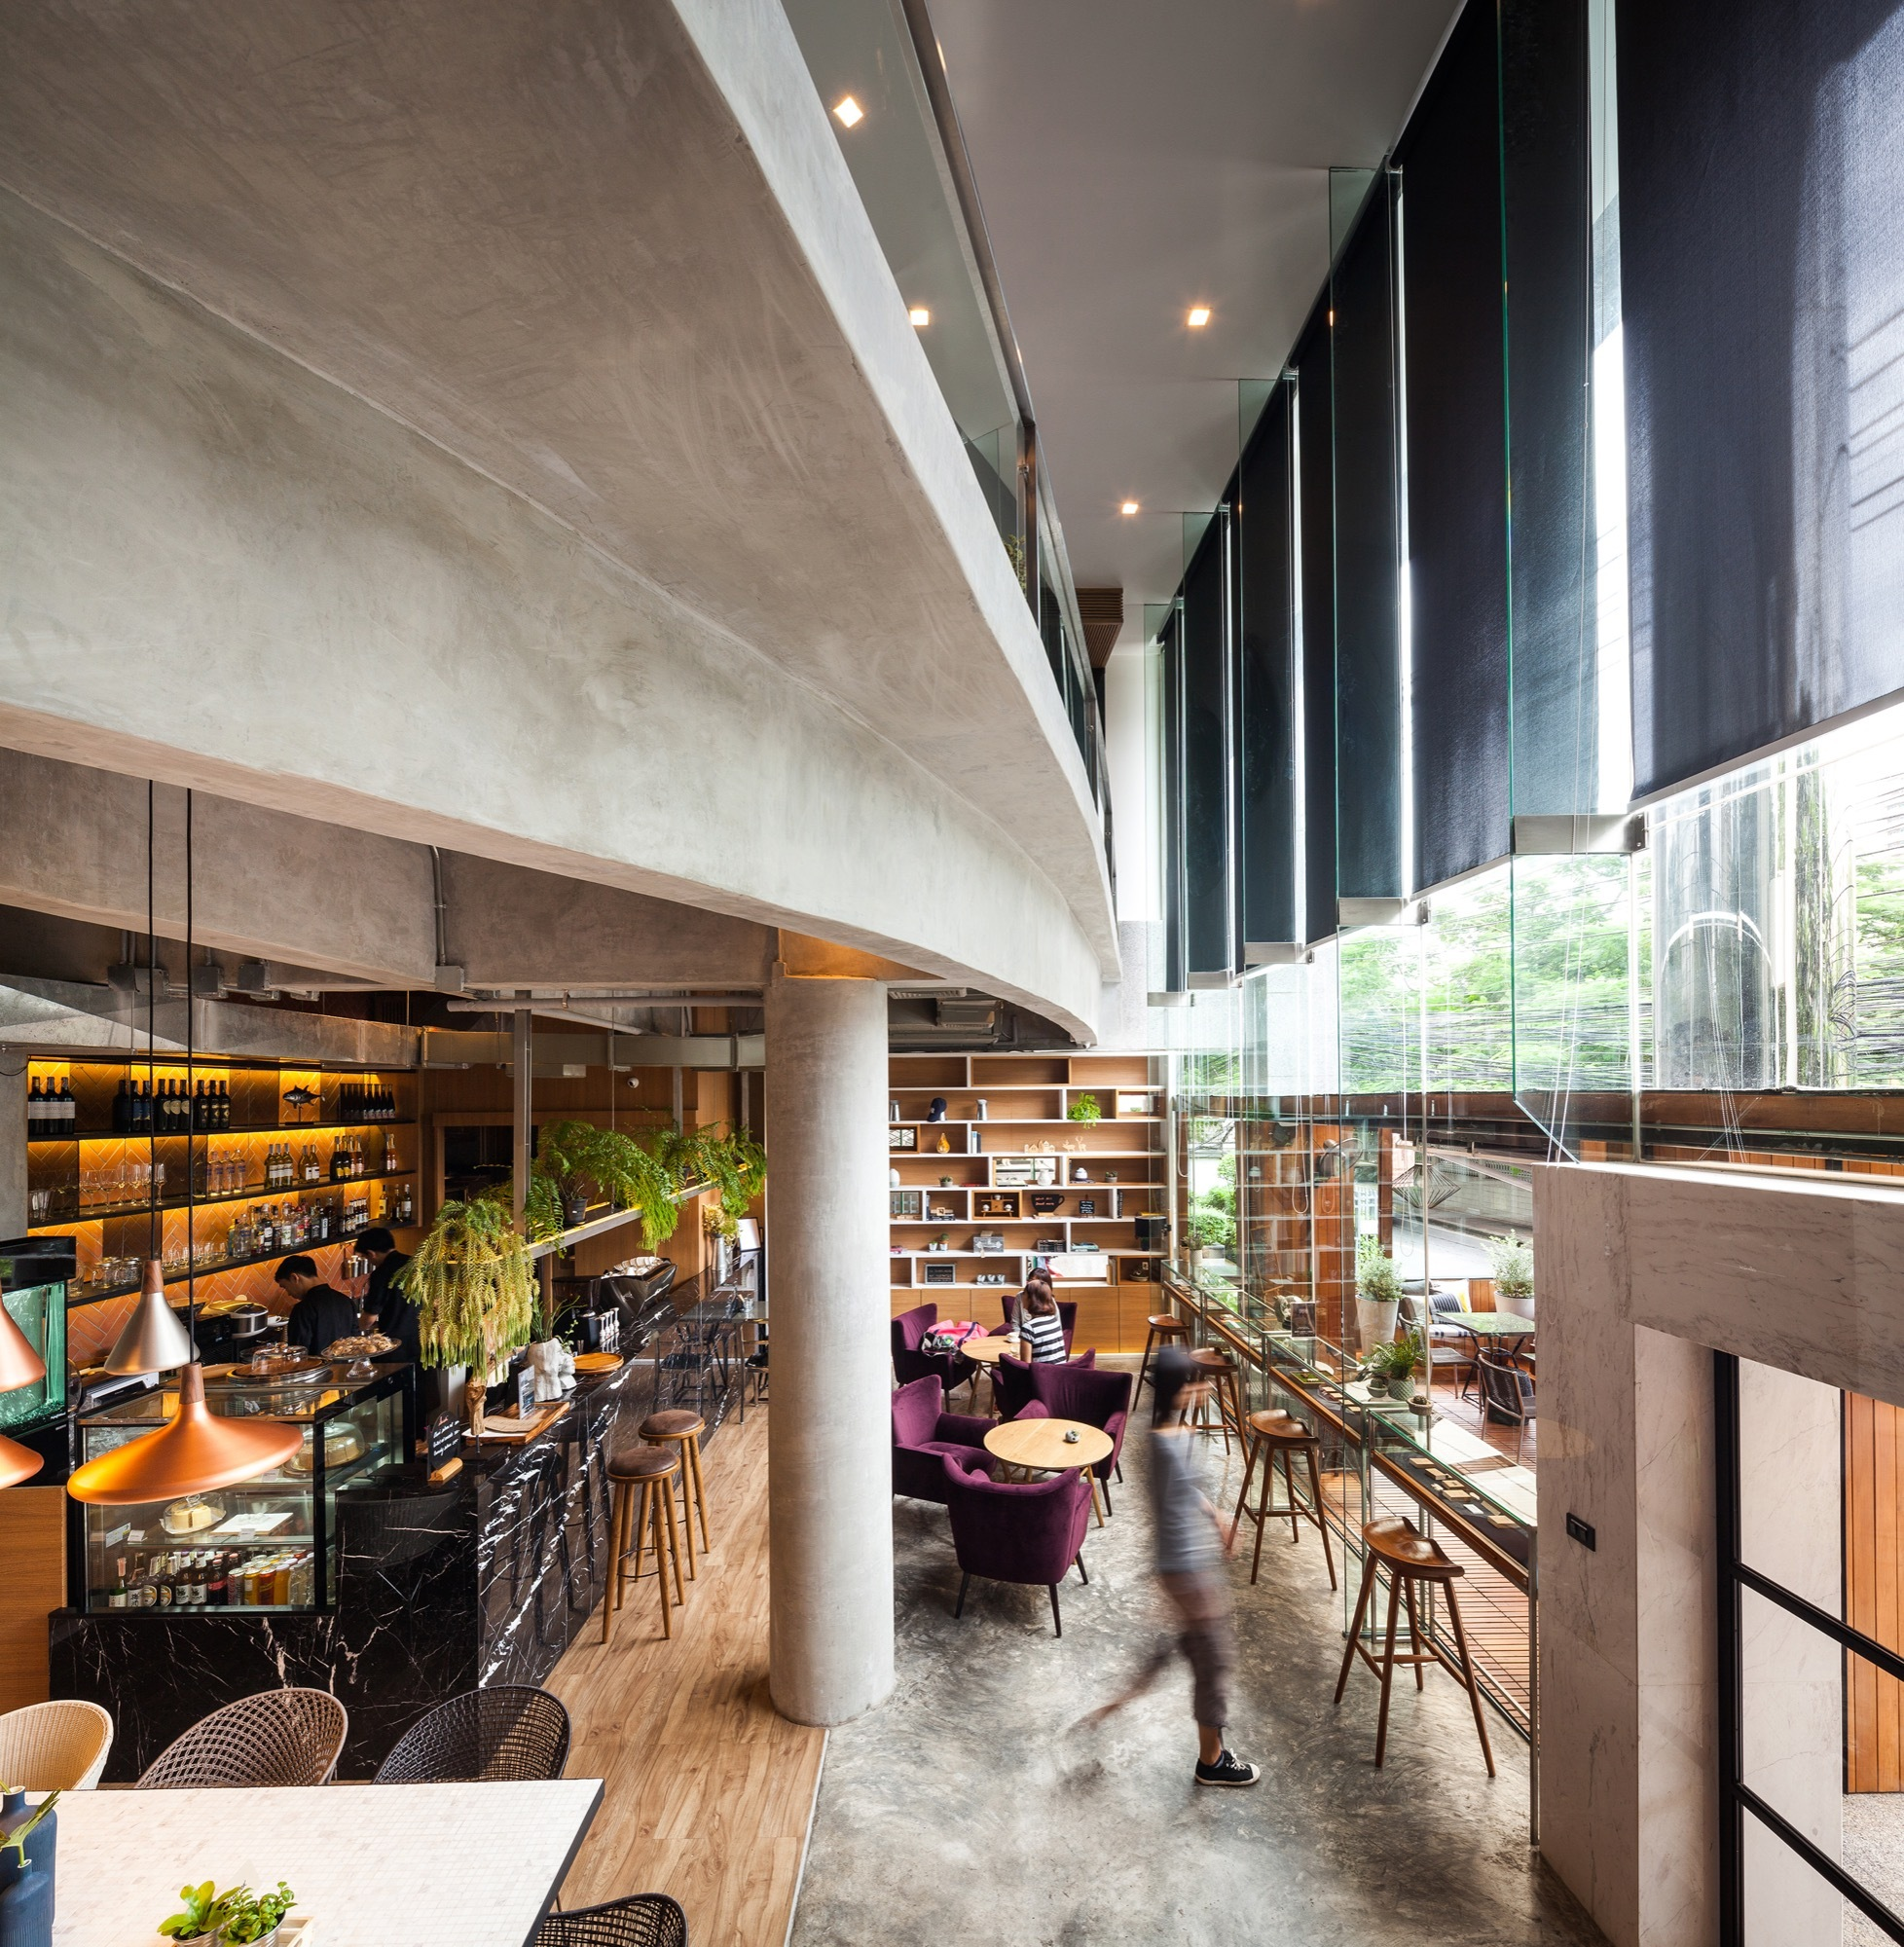 Storyline Cafe Junsekino Architect And Design Archdaily